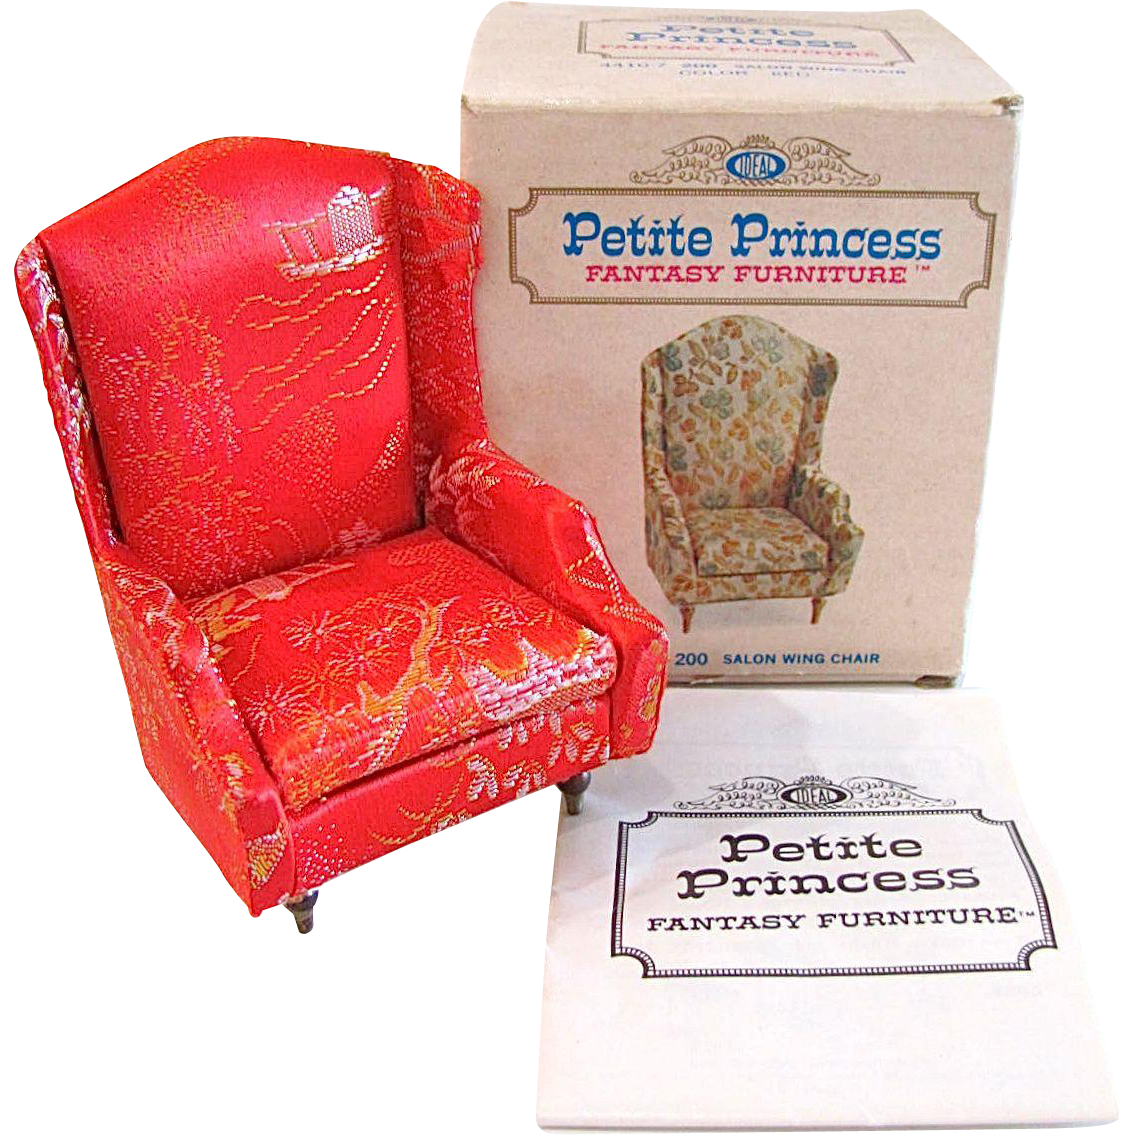 Ideal Petite Princess Red Salon Wing Chair In Original Box With Brochure Vintage 1960s